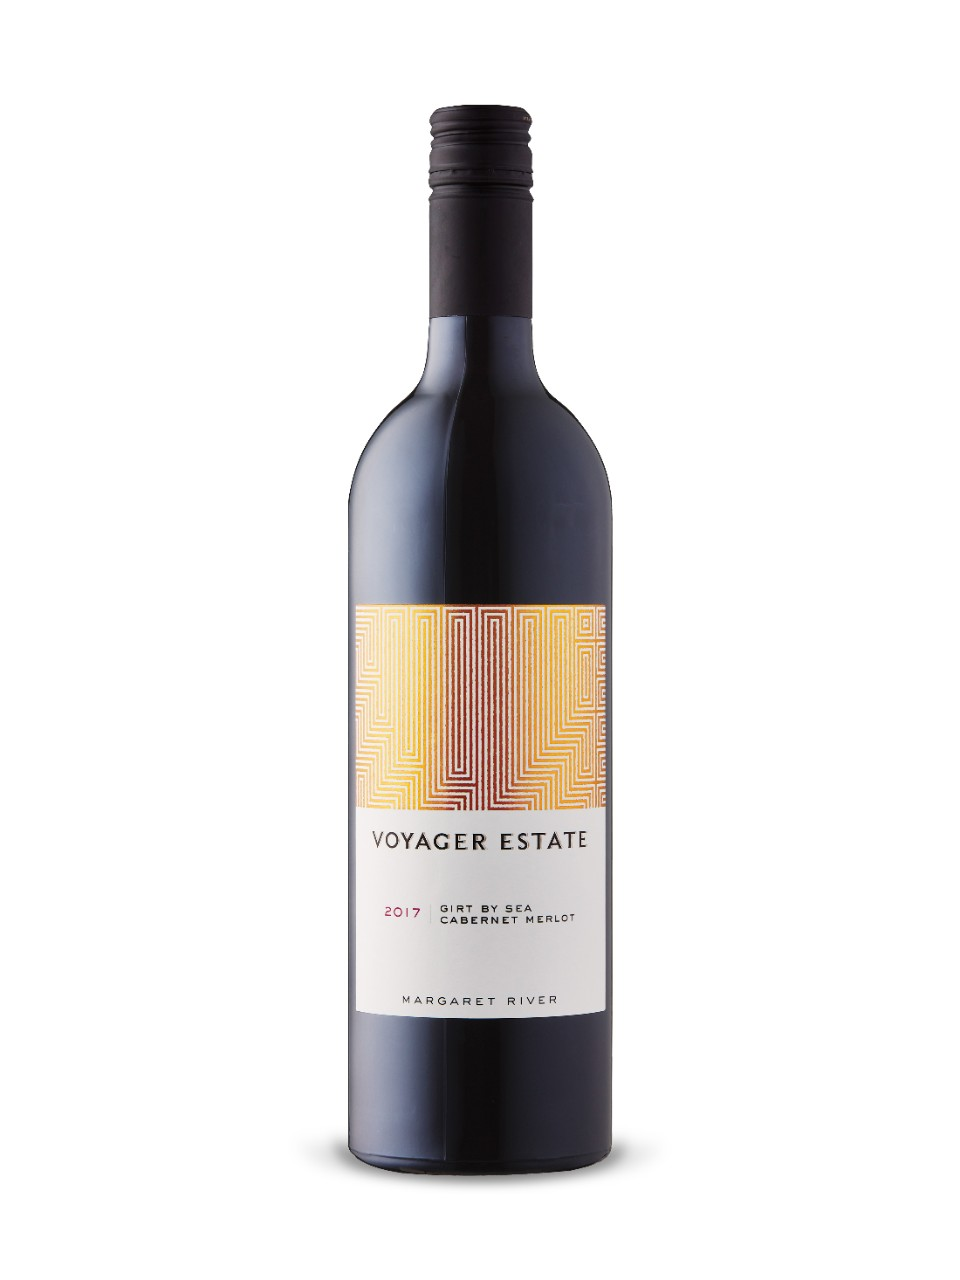 Voyager Estate Girt by Sea Cabernet/Merlot 2017 from LCBO